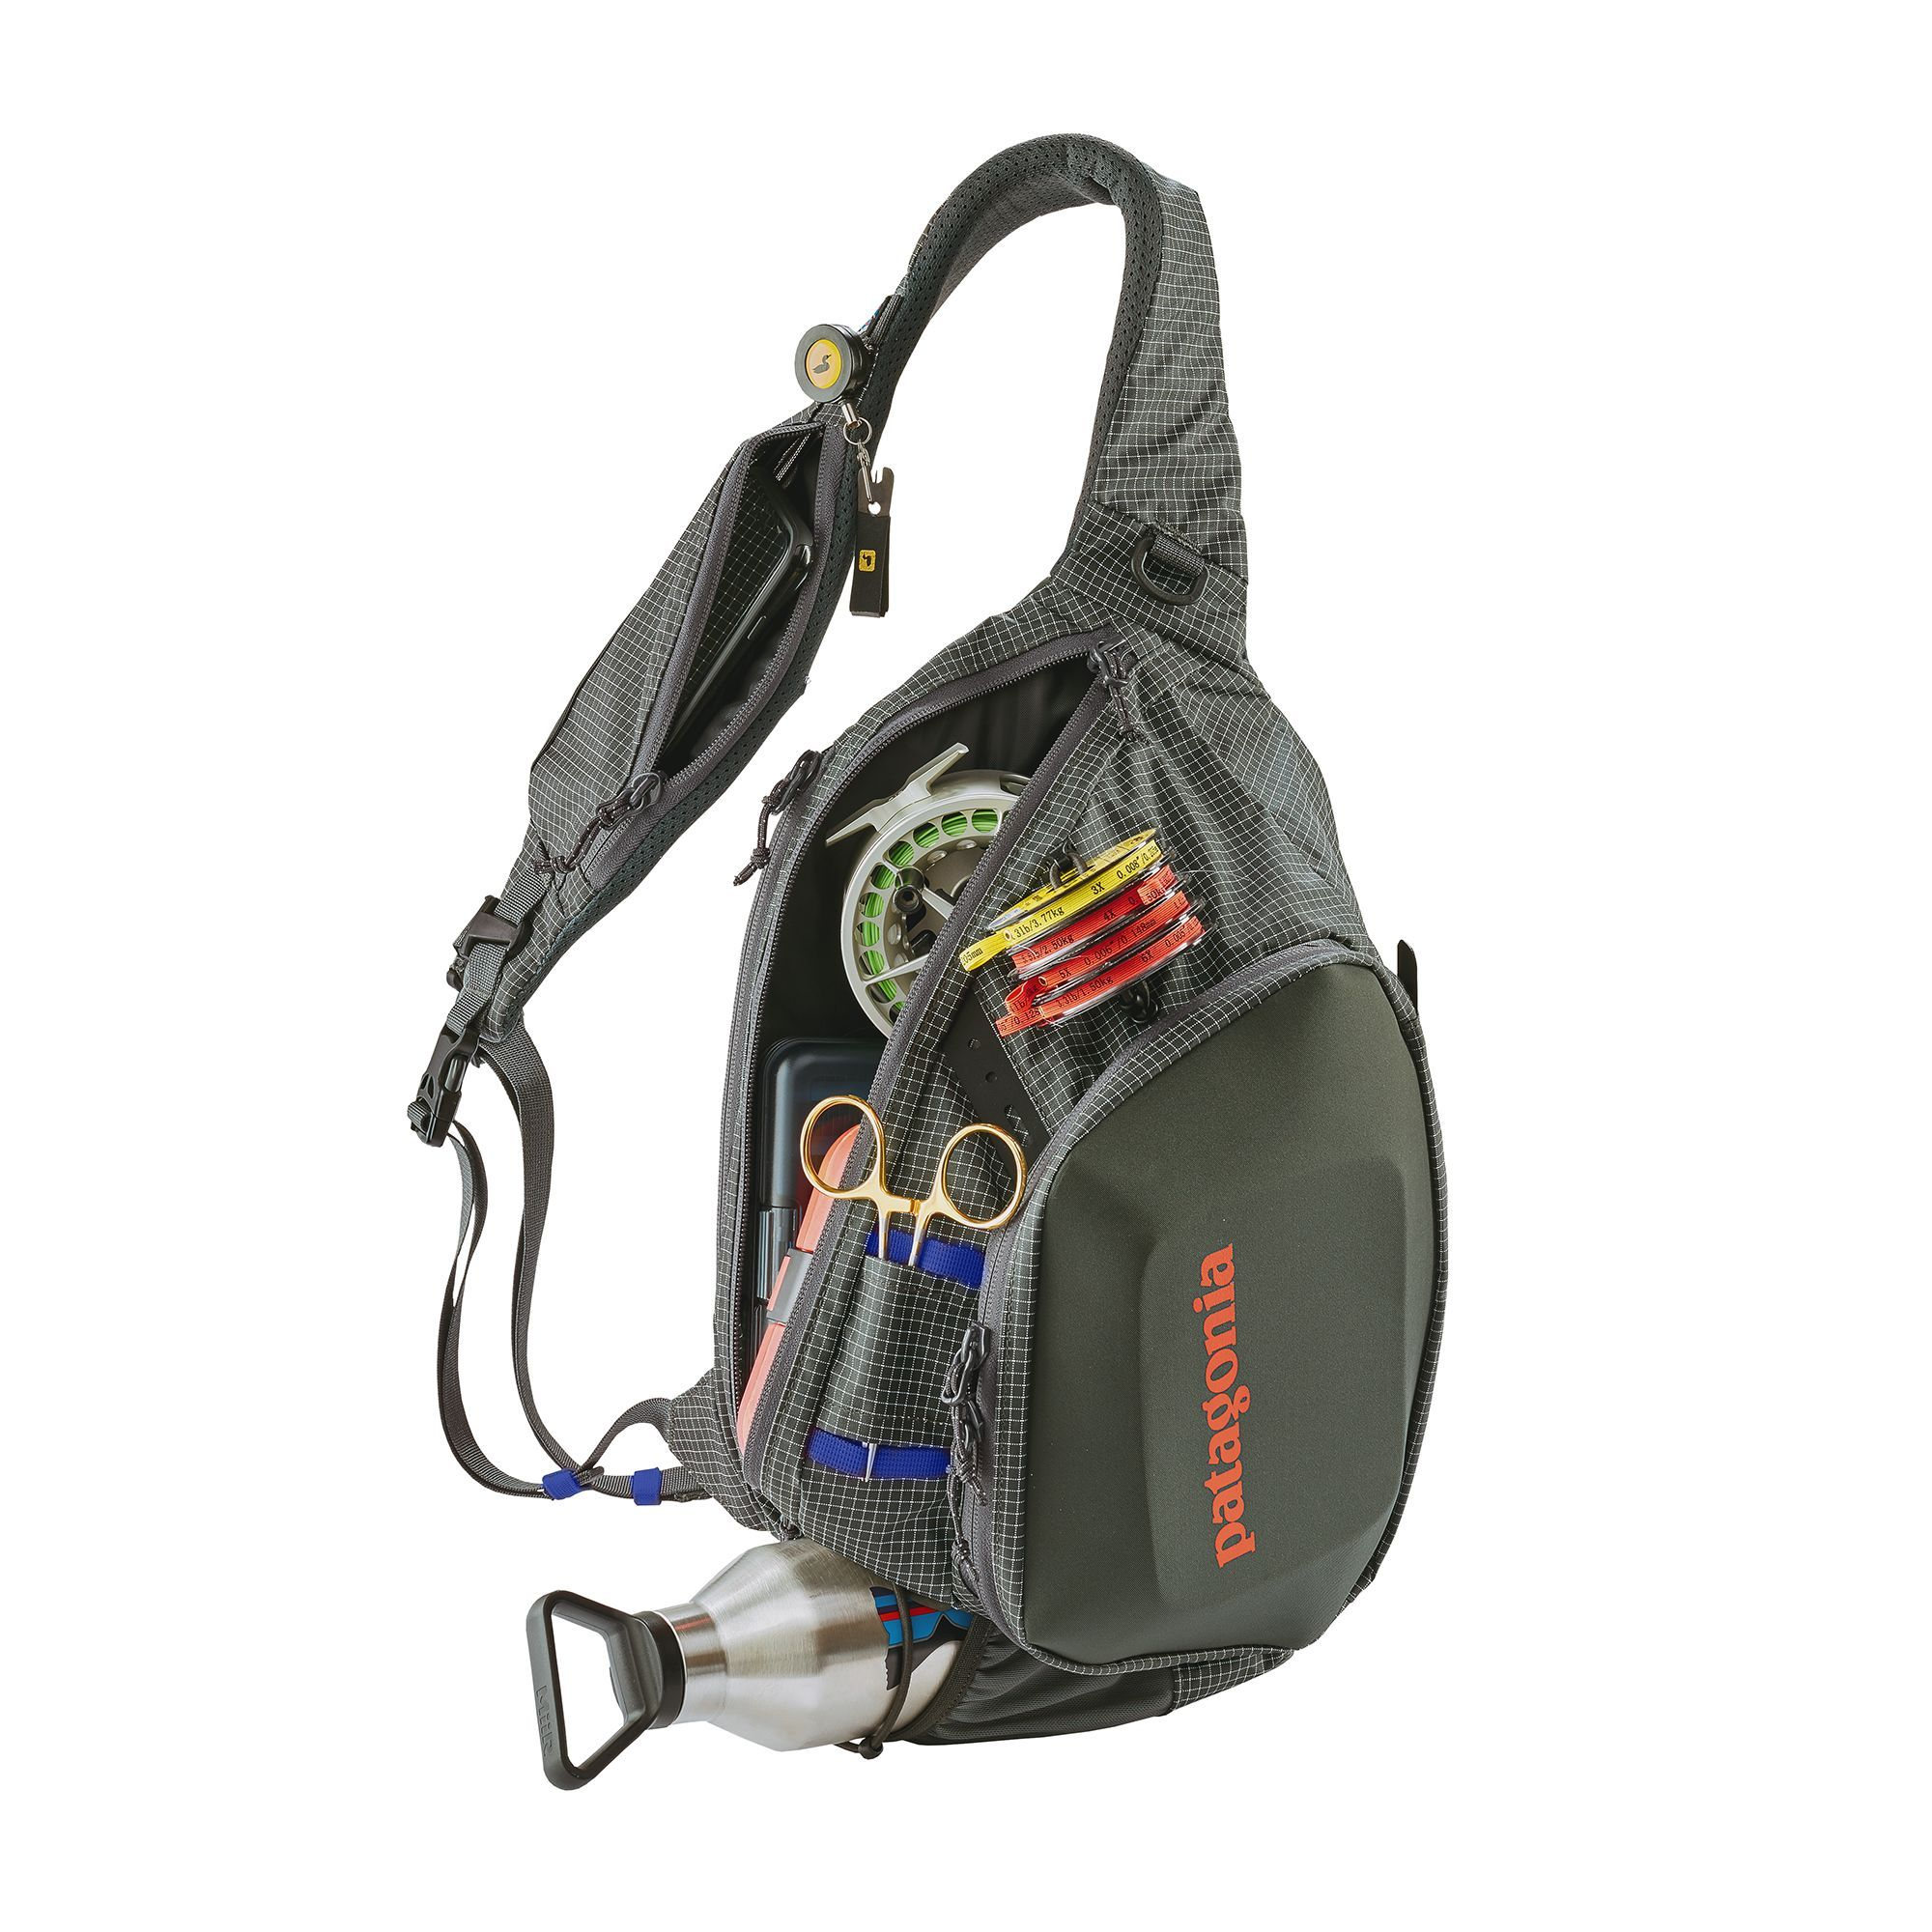 Patagonia Stealth Atom Fly Fishing Sling Pack 15L 1c50037cbea37